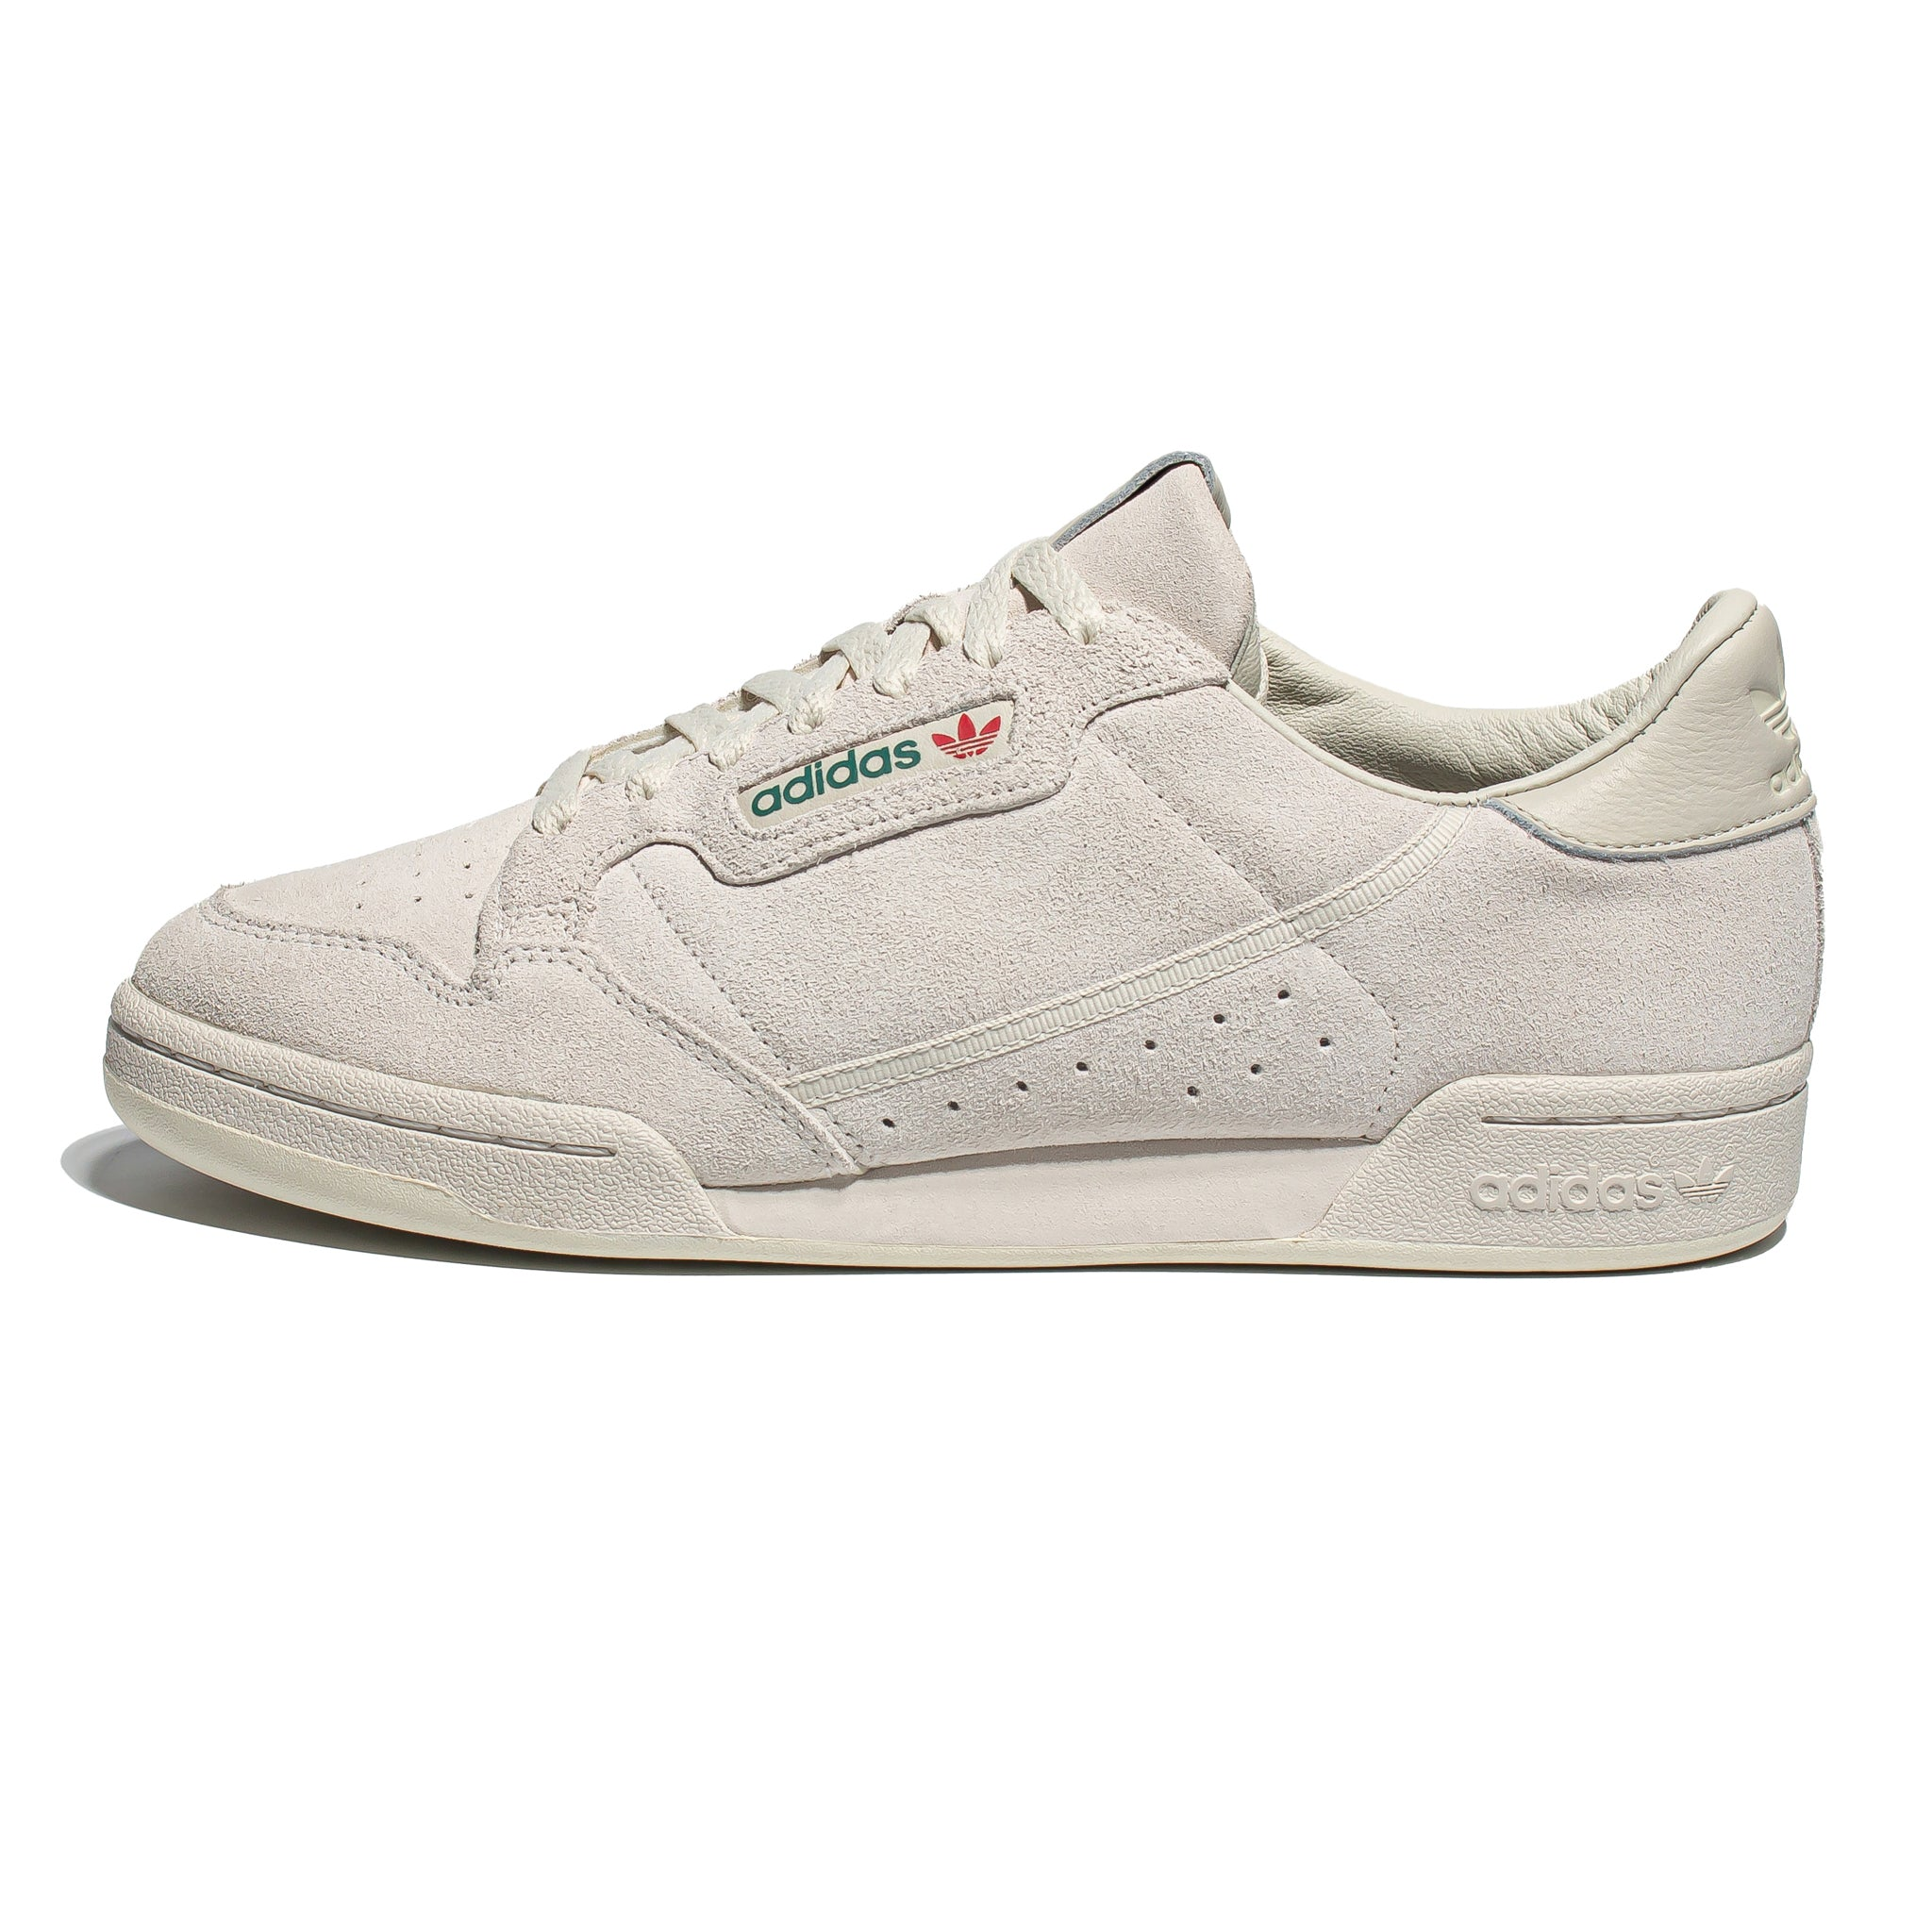 Adidas Continental 80 Suede Raw White